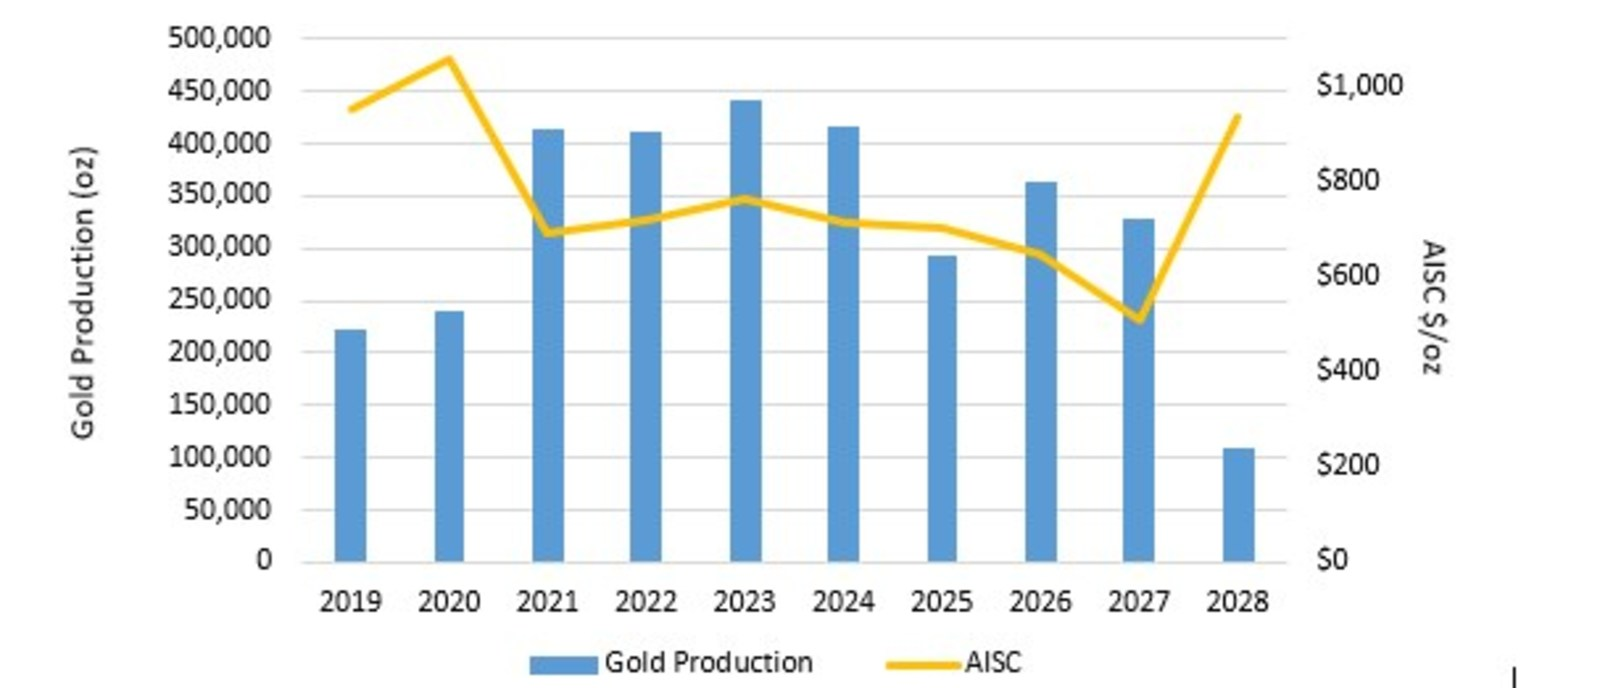 Figure 1: Expansion Feasibility Study Gold Production and AISC Profile